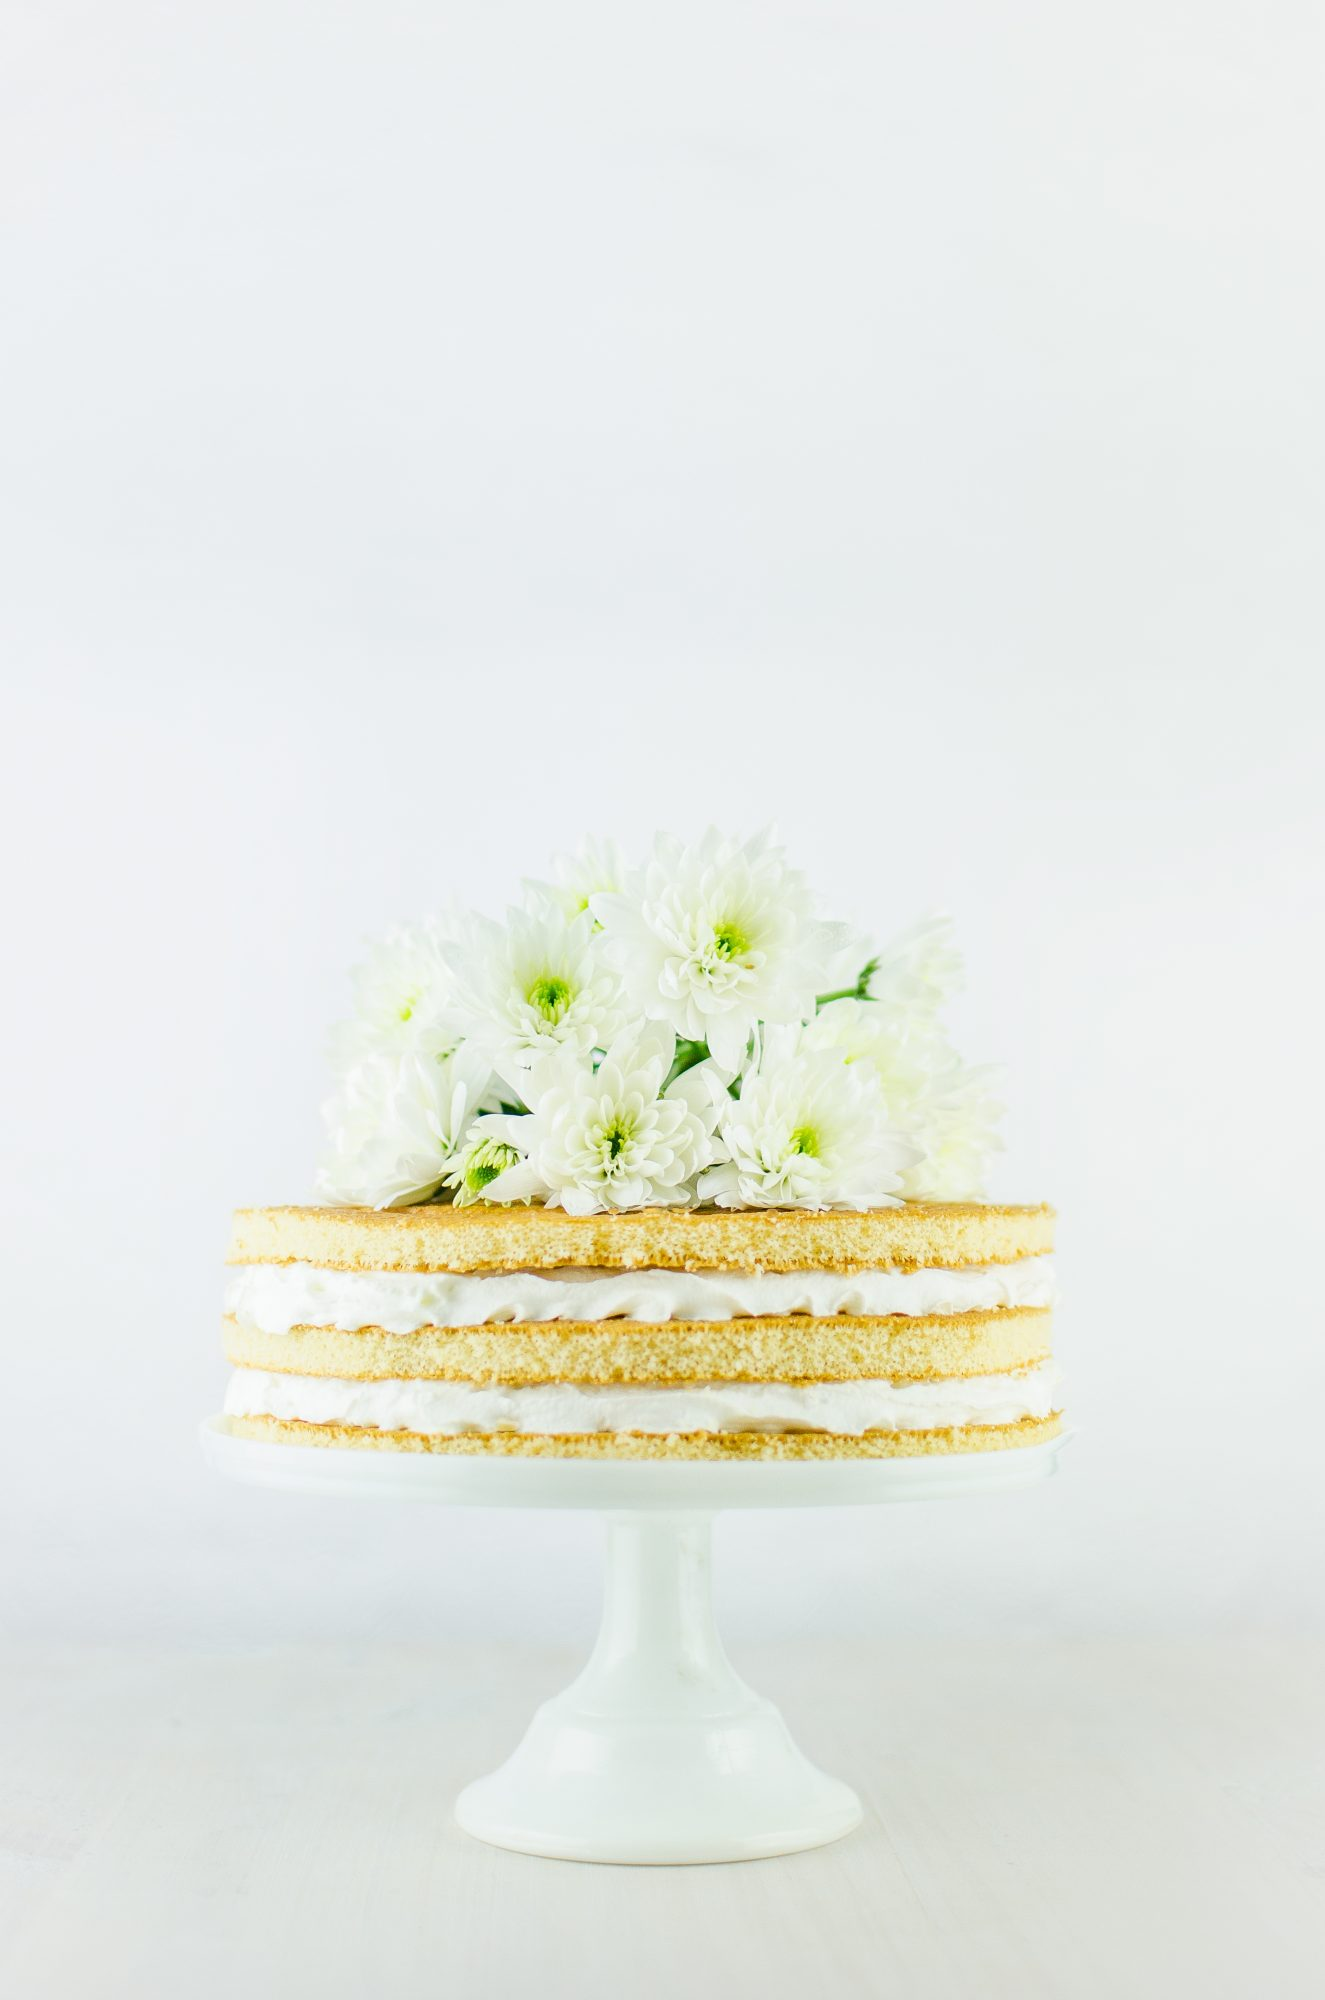 Wedding Cake Design Tips From an Industry Insider